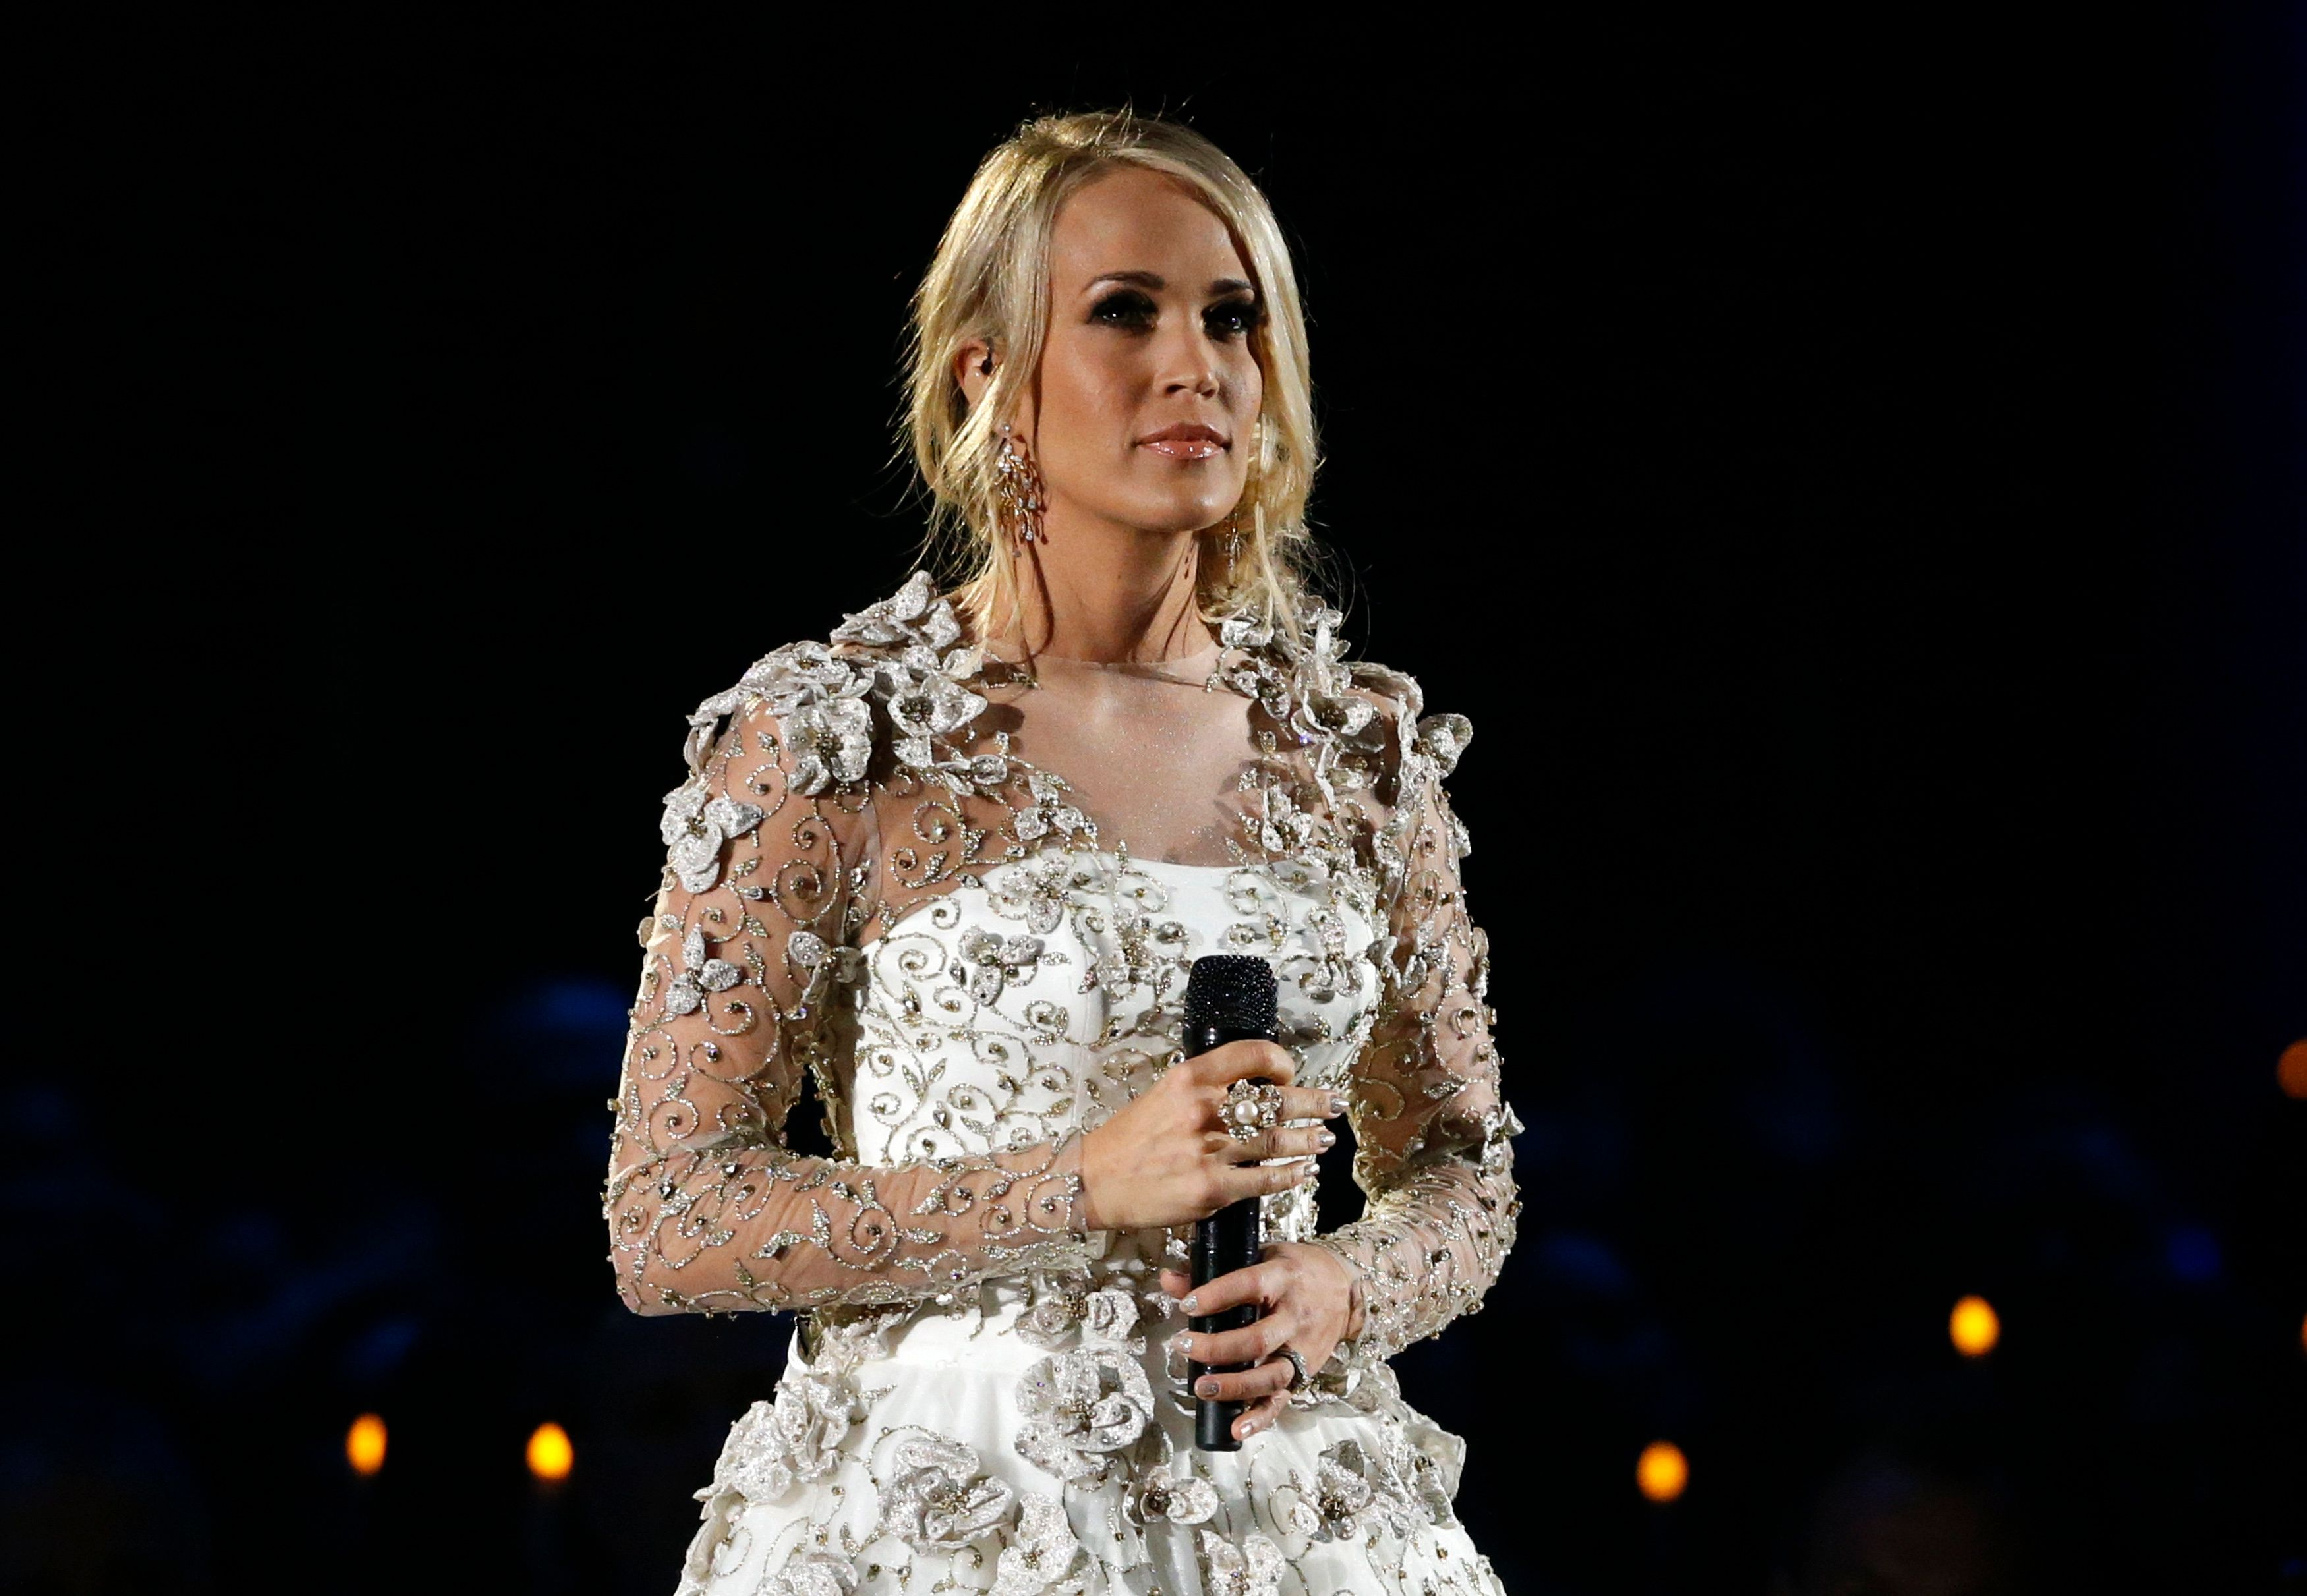 Country music star Carrie Underwood is recovering after a fall at her Nashville home left her with a broken wrist and other i